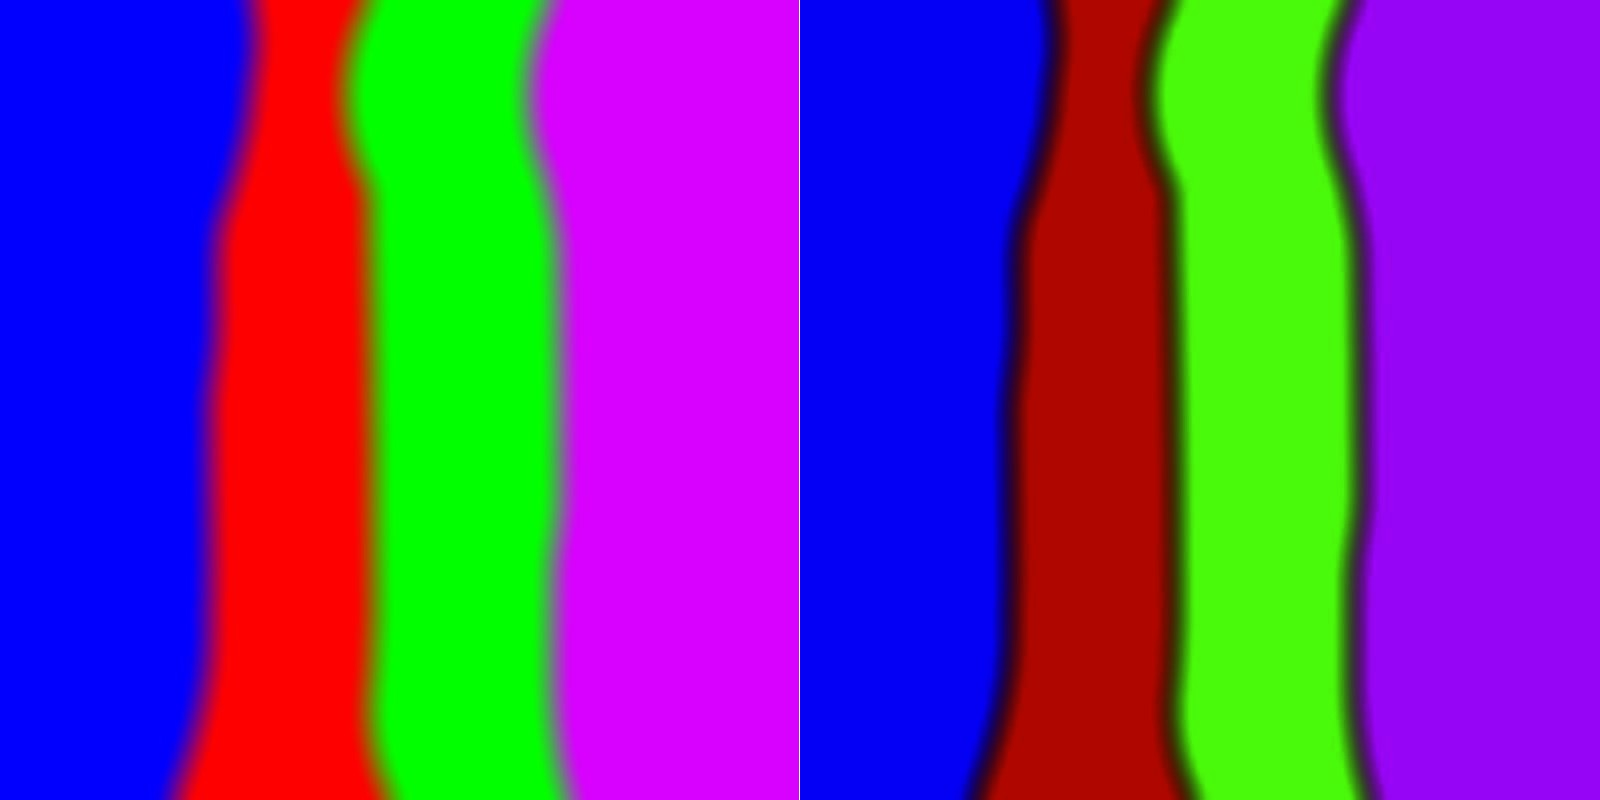 Left: Linear RGB blurring sRGB encoding; Right: sRGB encoding, then blurring